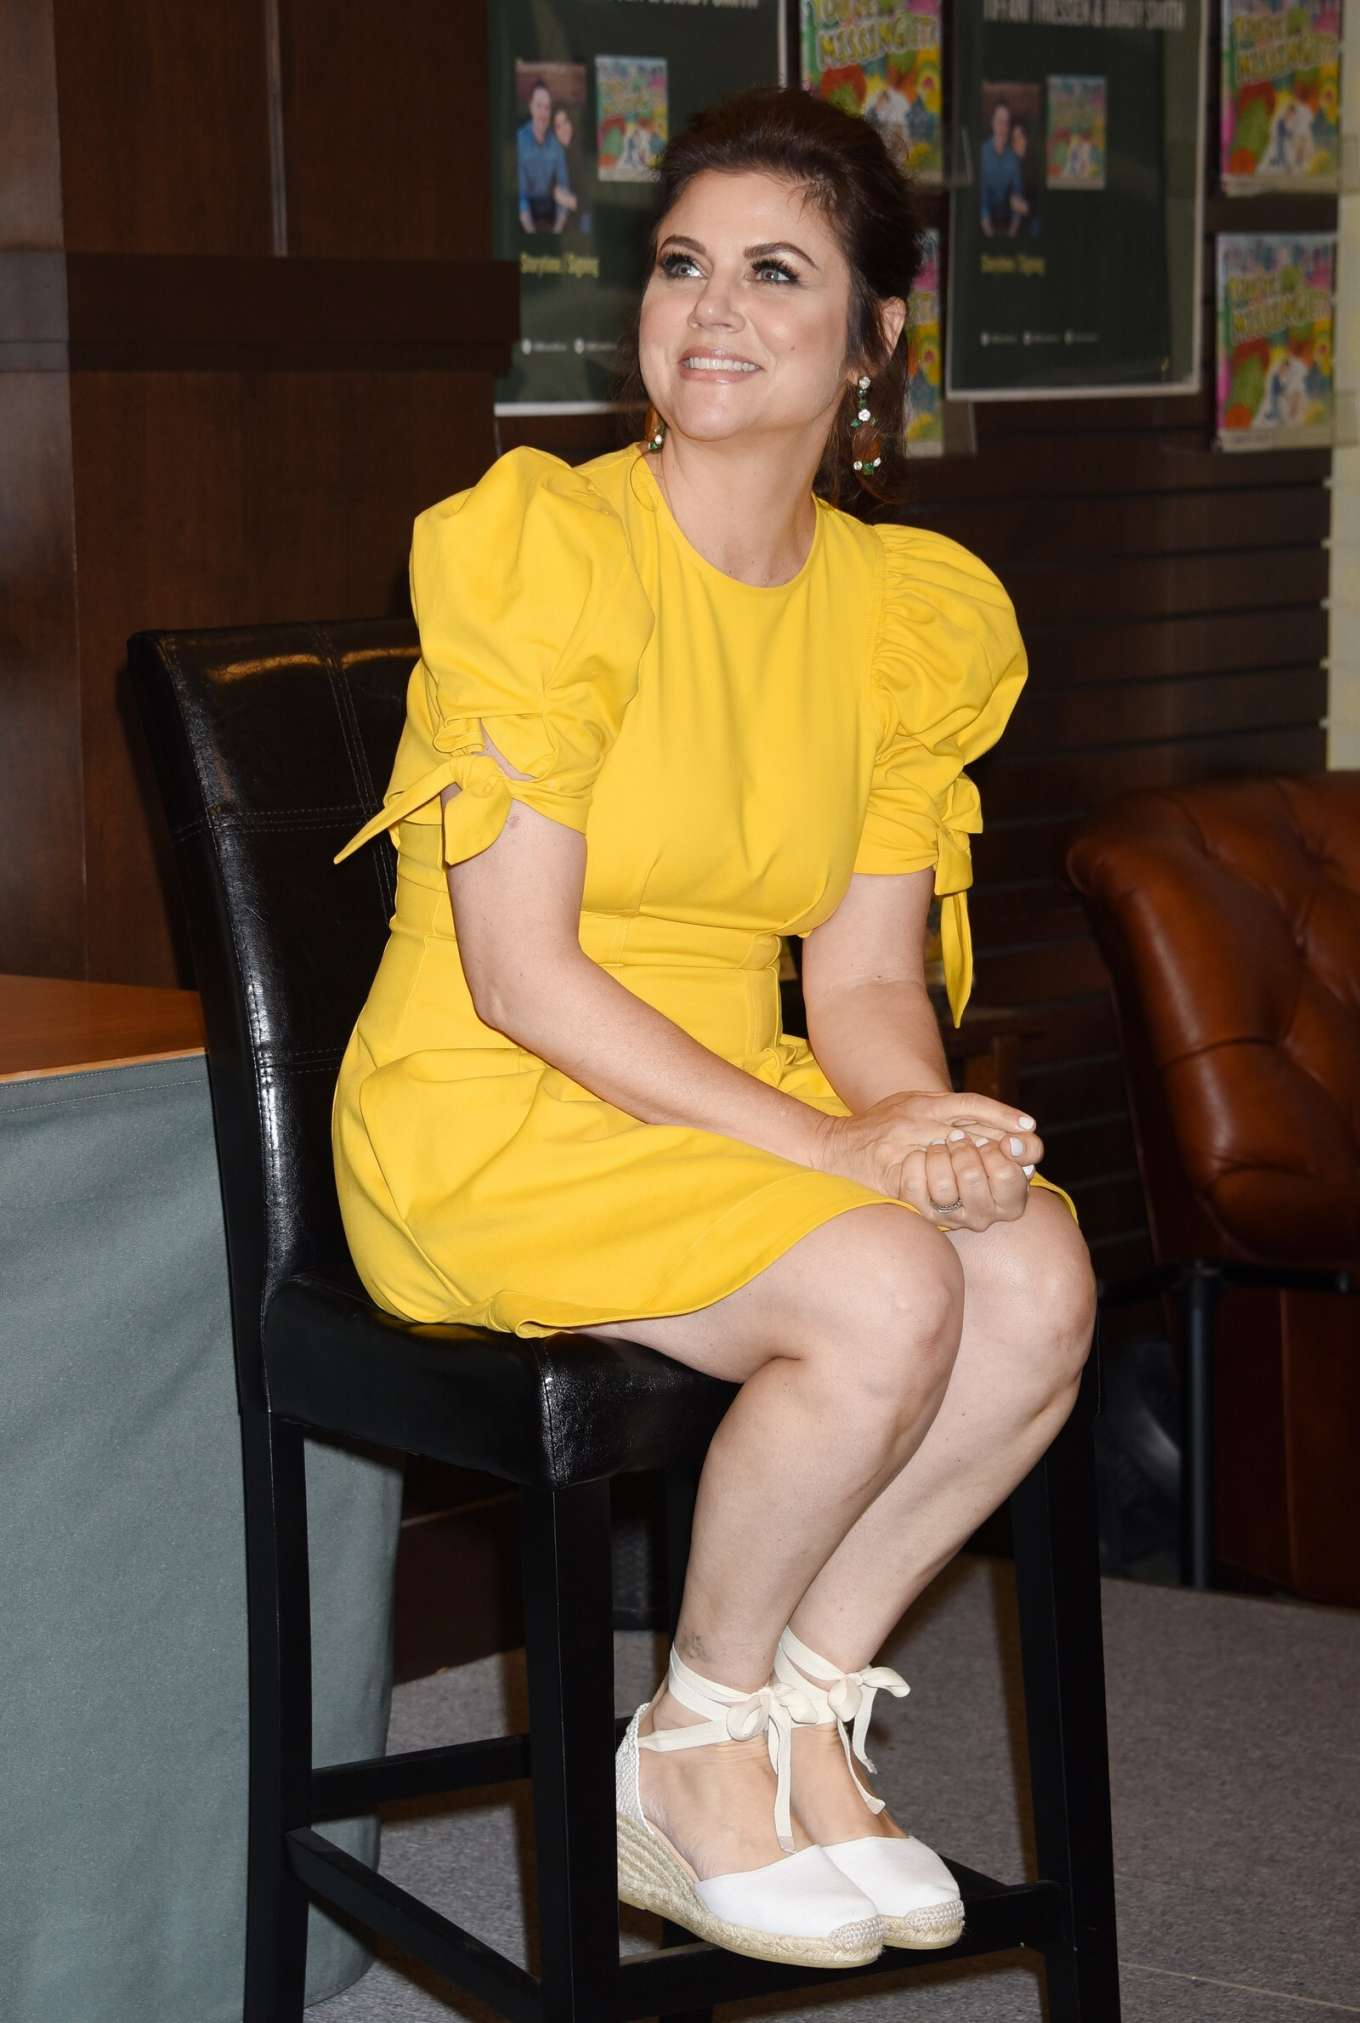 Tiffani-Amber Thiessen - Promoting her 'You're Missing It!' Book at Barnes & Noble in LA